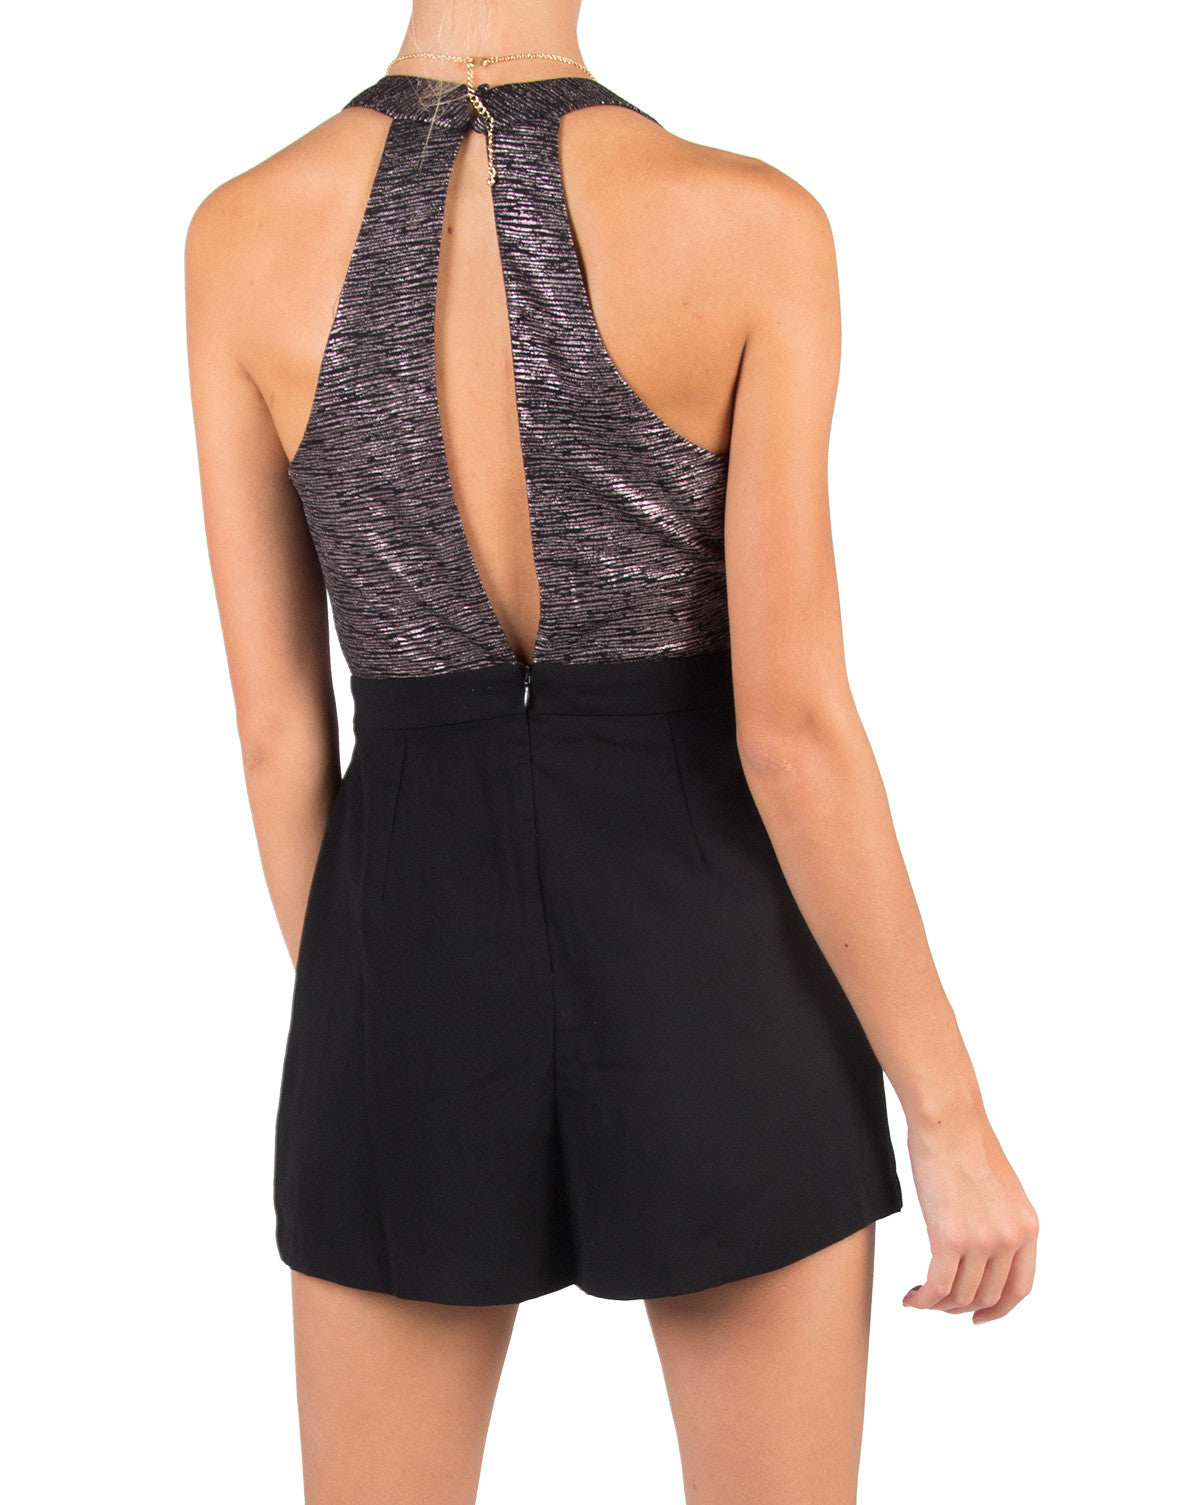 Lush Clothing - Metallic Cross Front Romper - Lush LP20332-S01-Black